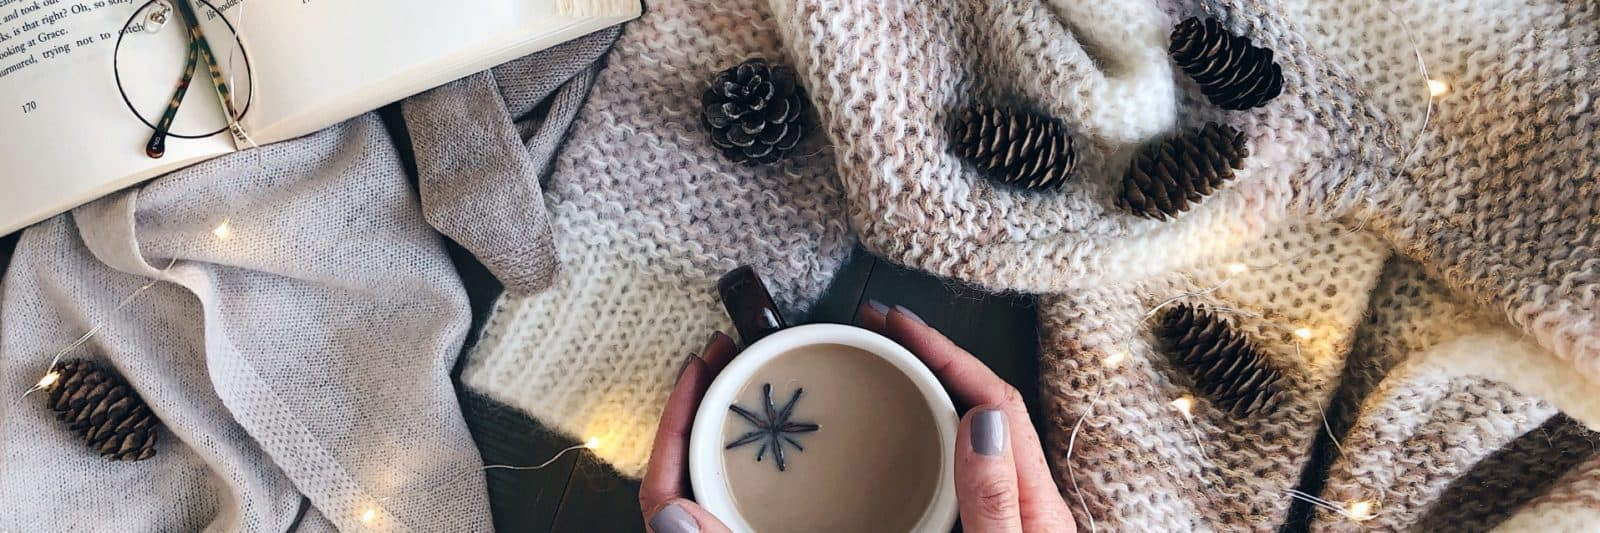 warm-and-cozy-winter-weather